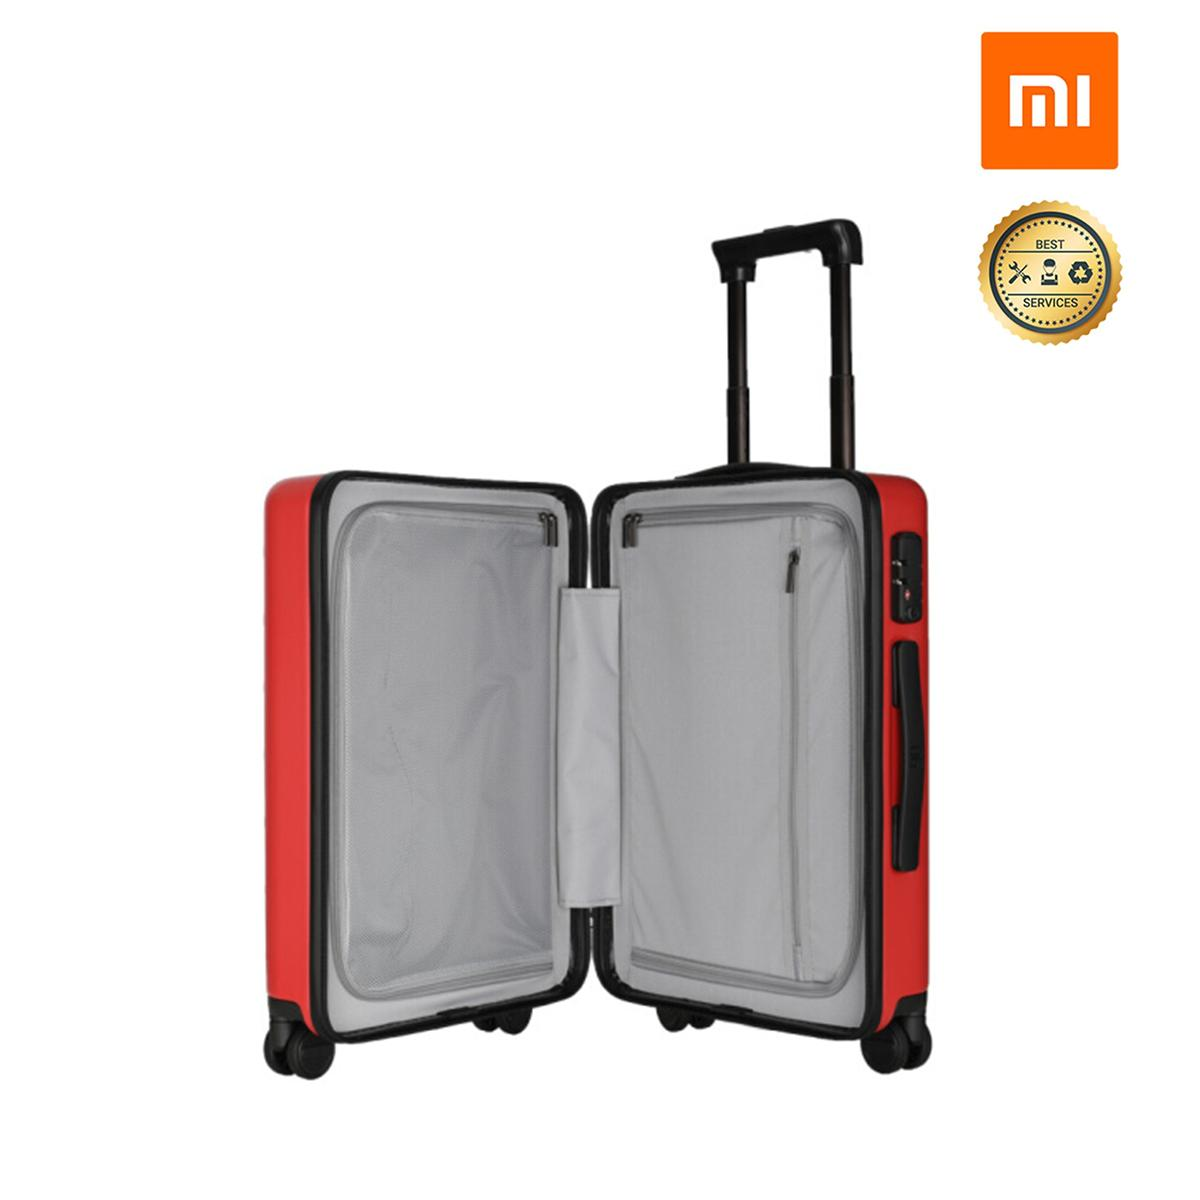 Hot Deal Khi Mua [Free100KShip] Vali Doanh Nhân Mi 90 Point Business Travel Dual-Use Suitcase 20